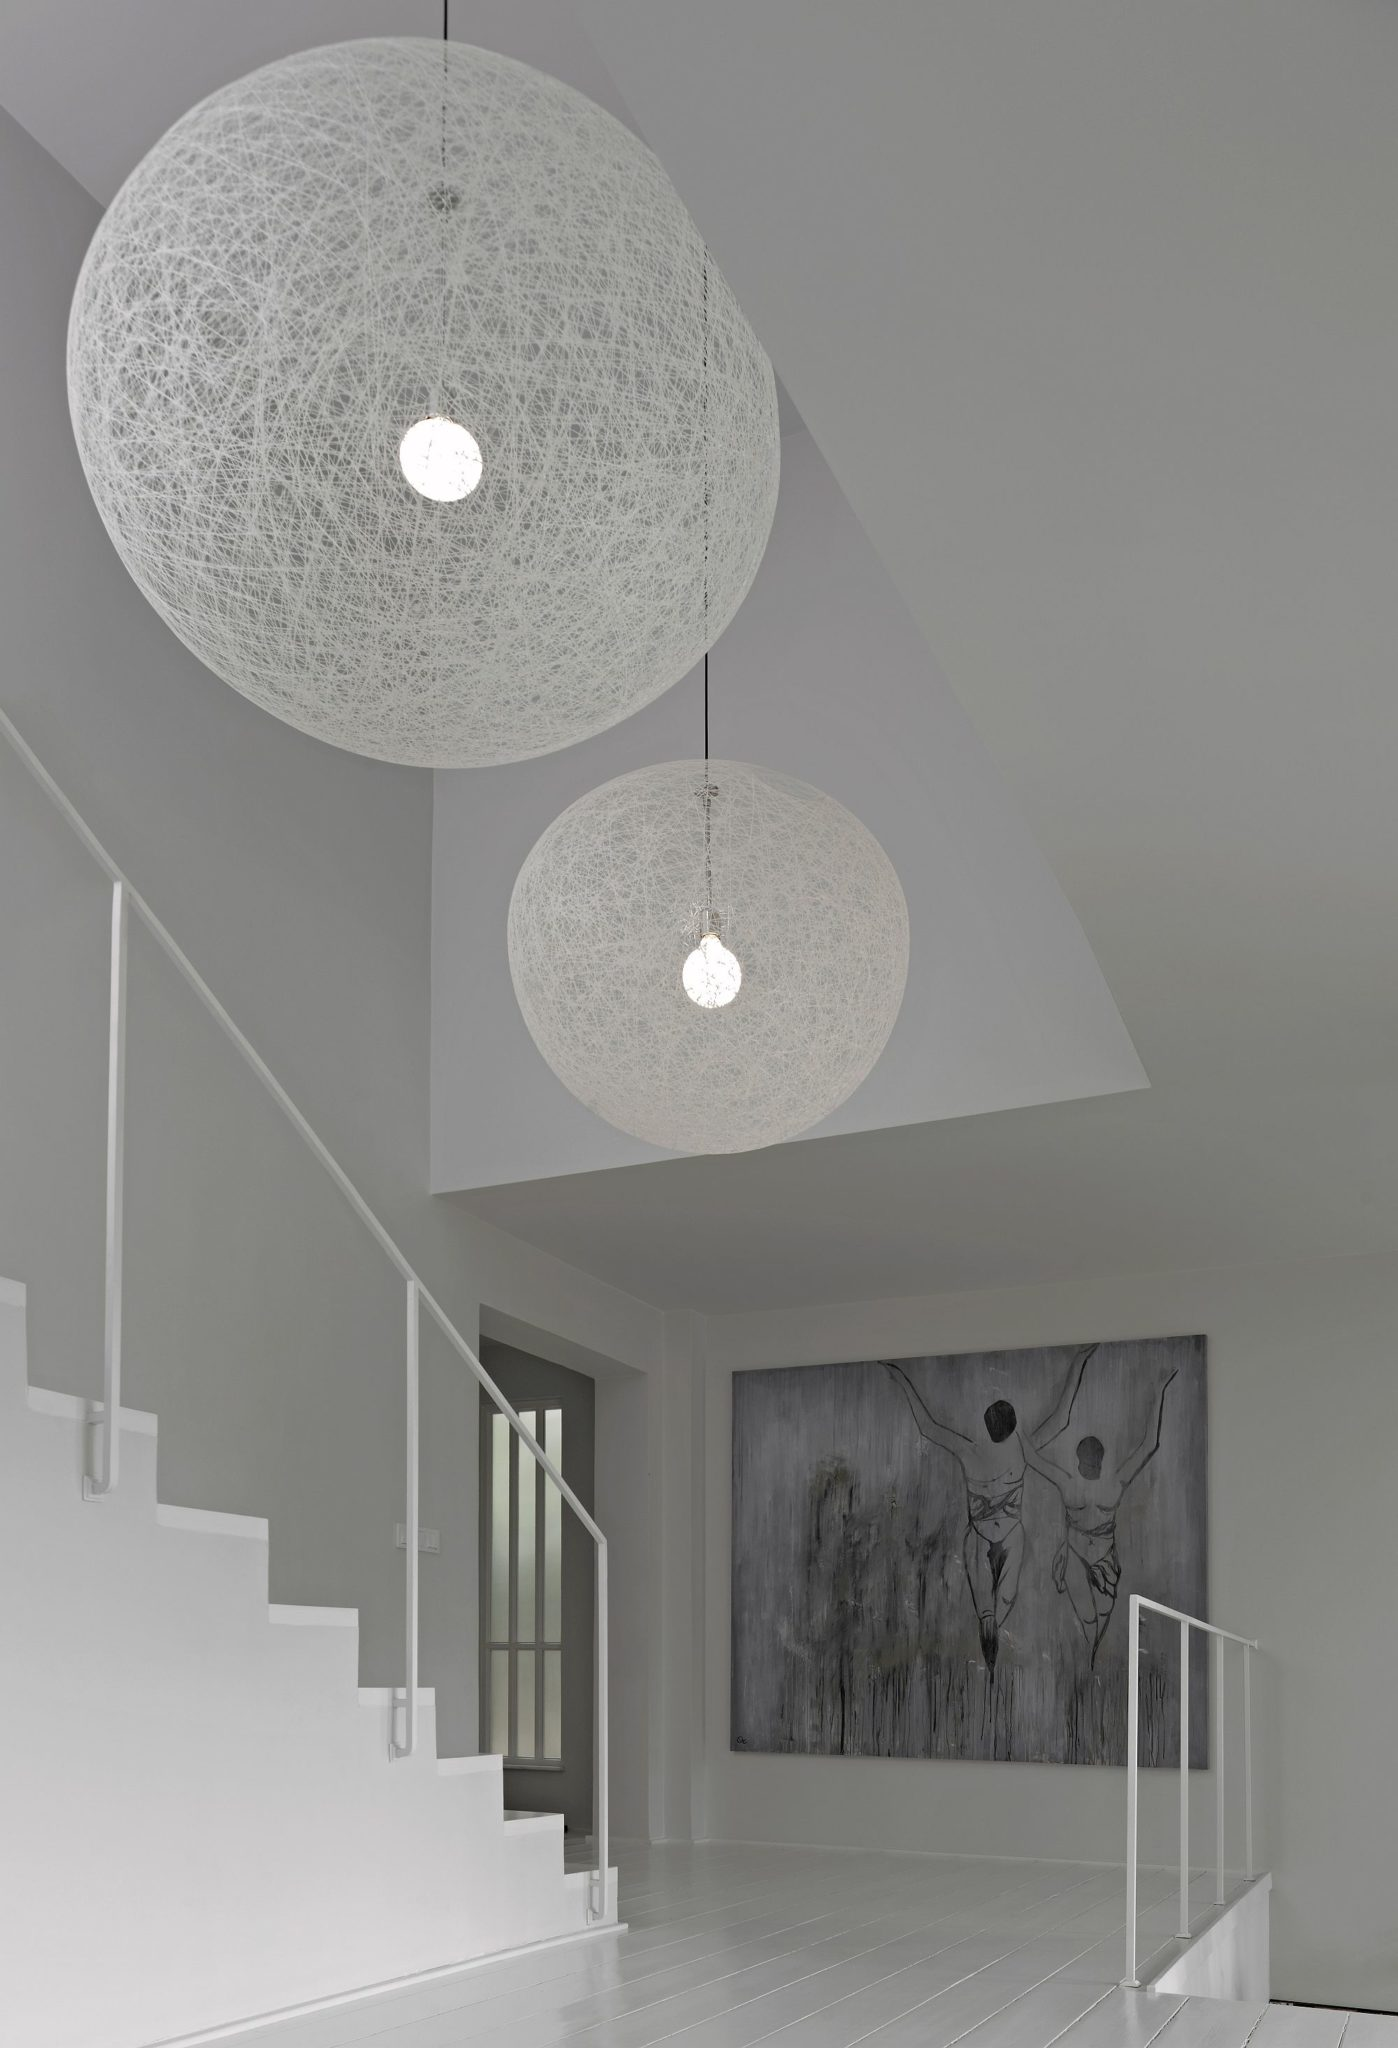 Beautiful-Moooi-pendants-steal-the-show-inside-the-home-even-while-blending-into-the-backdrop